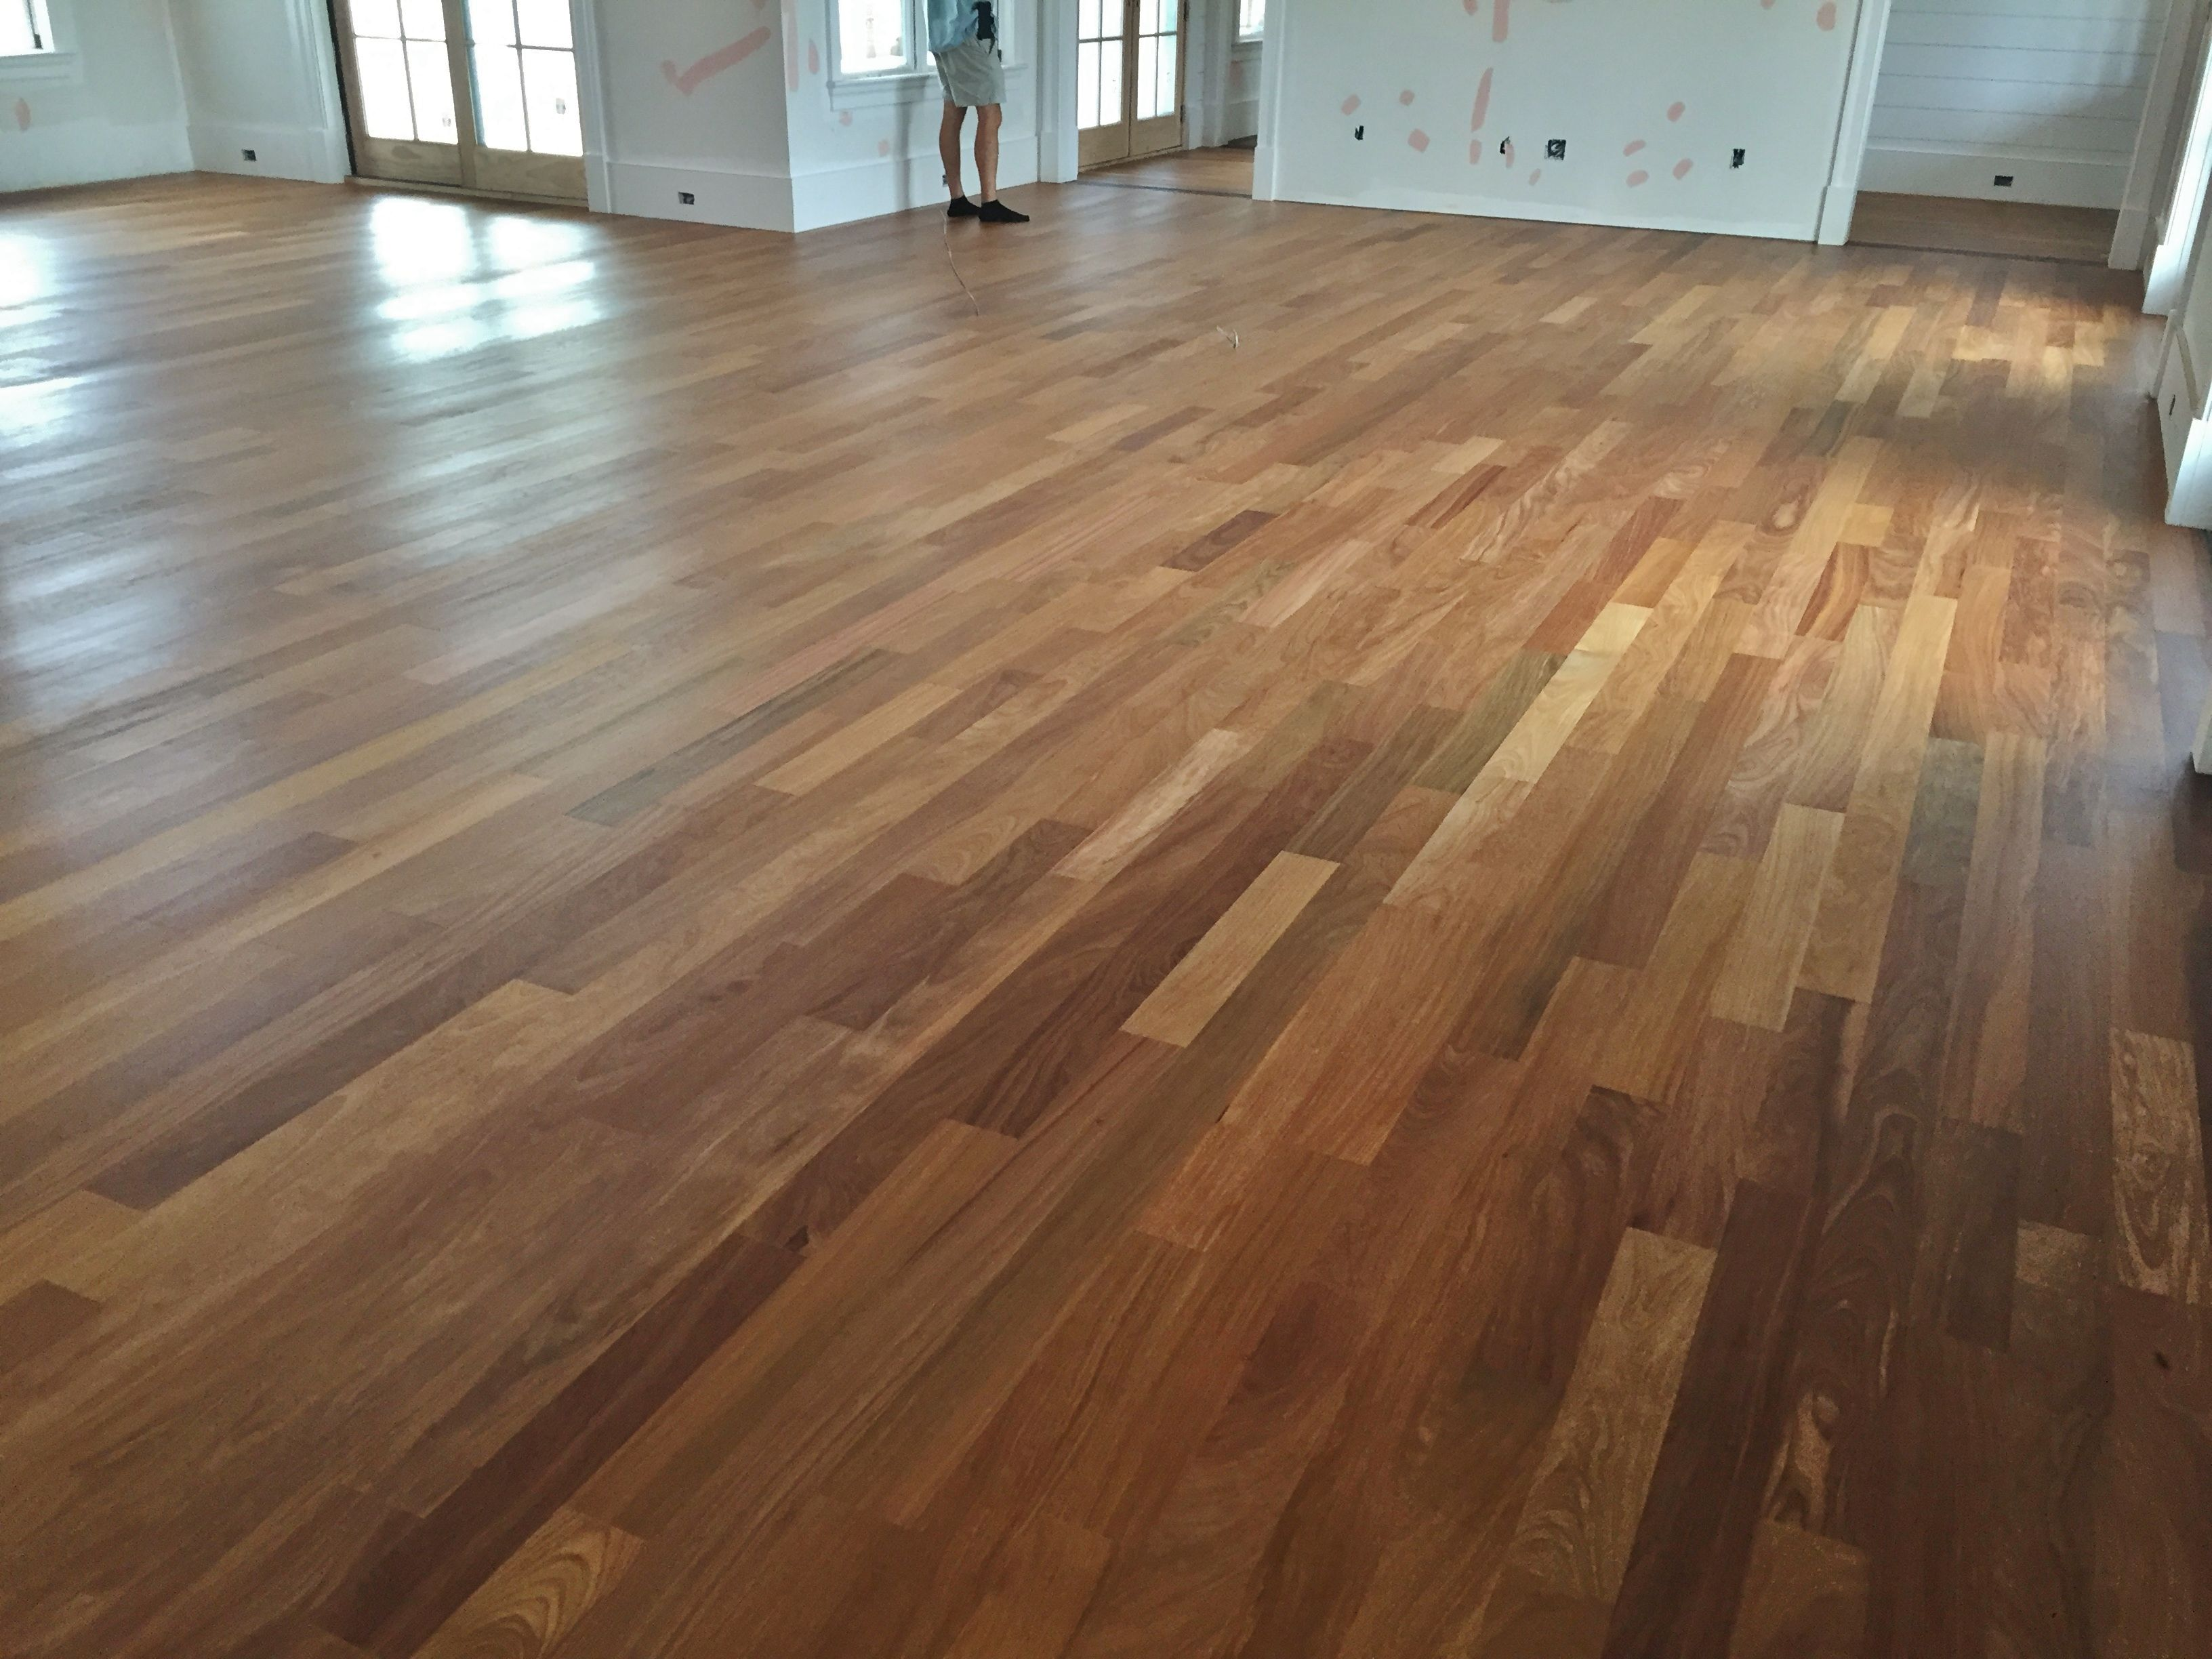 flooring floor ideas luxury pickled snow knowhunger rectangle marble white s of oak floors